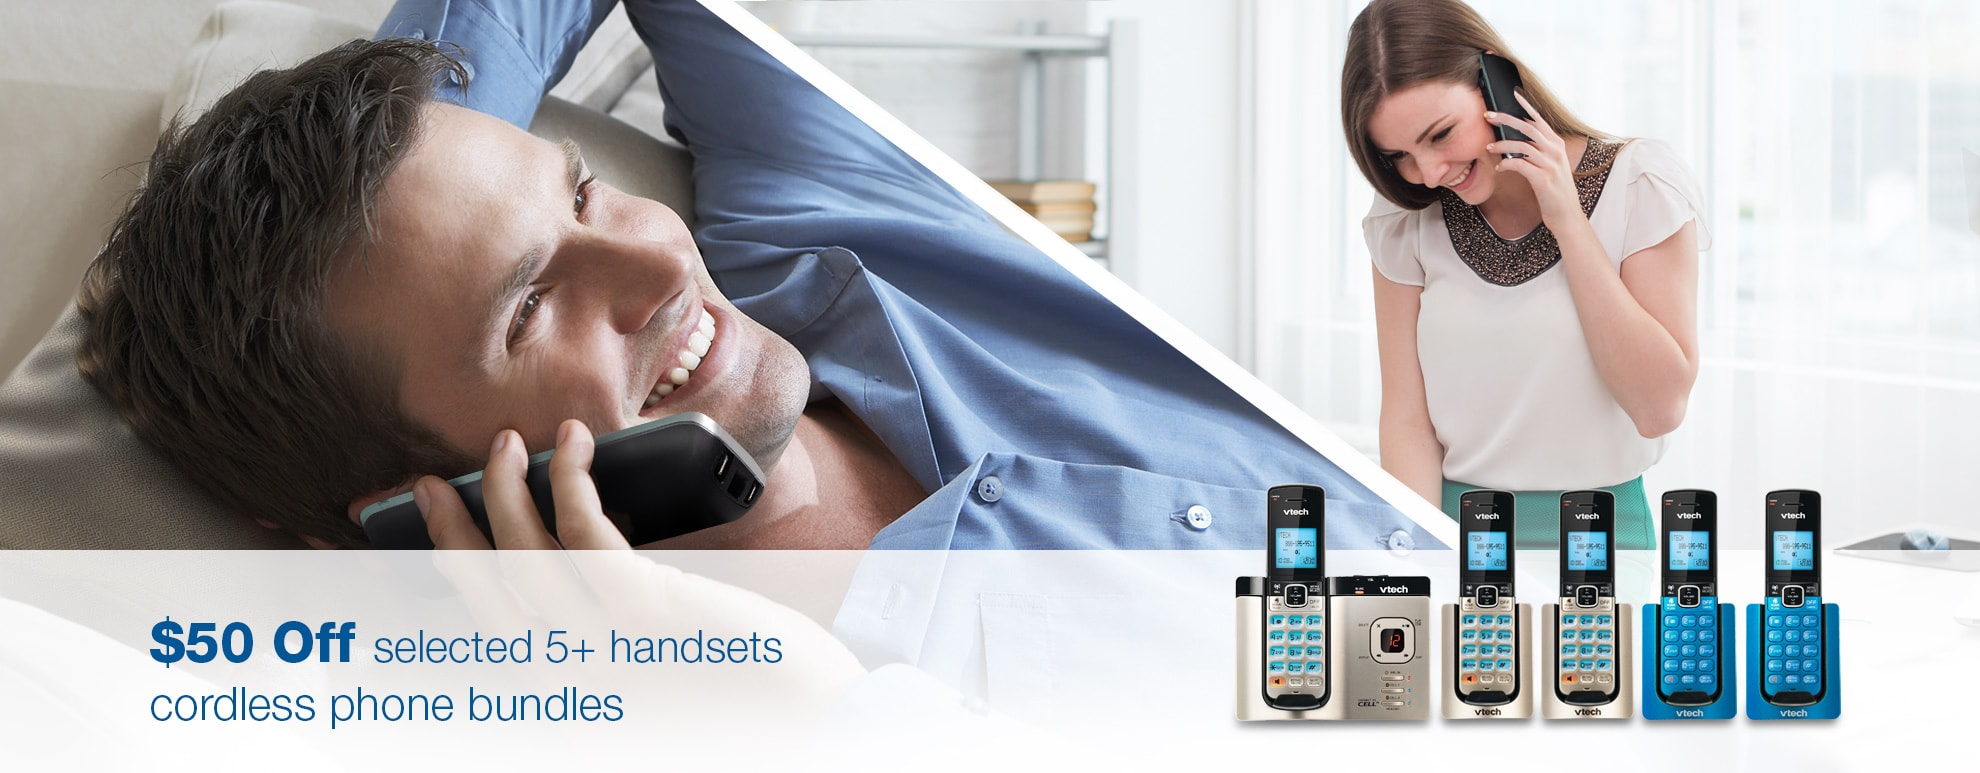 $50 off selected 5+ handsets cordless phone bundles